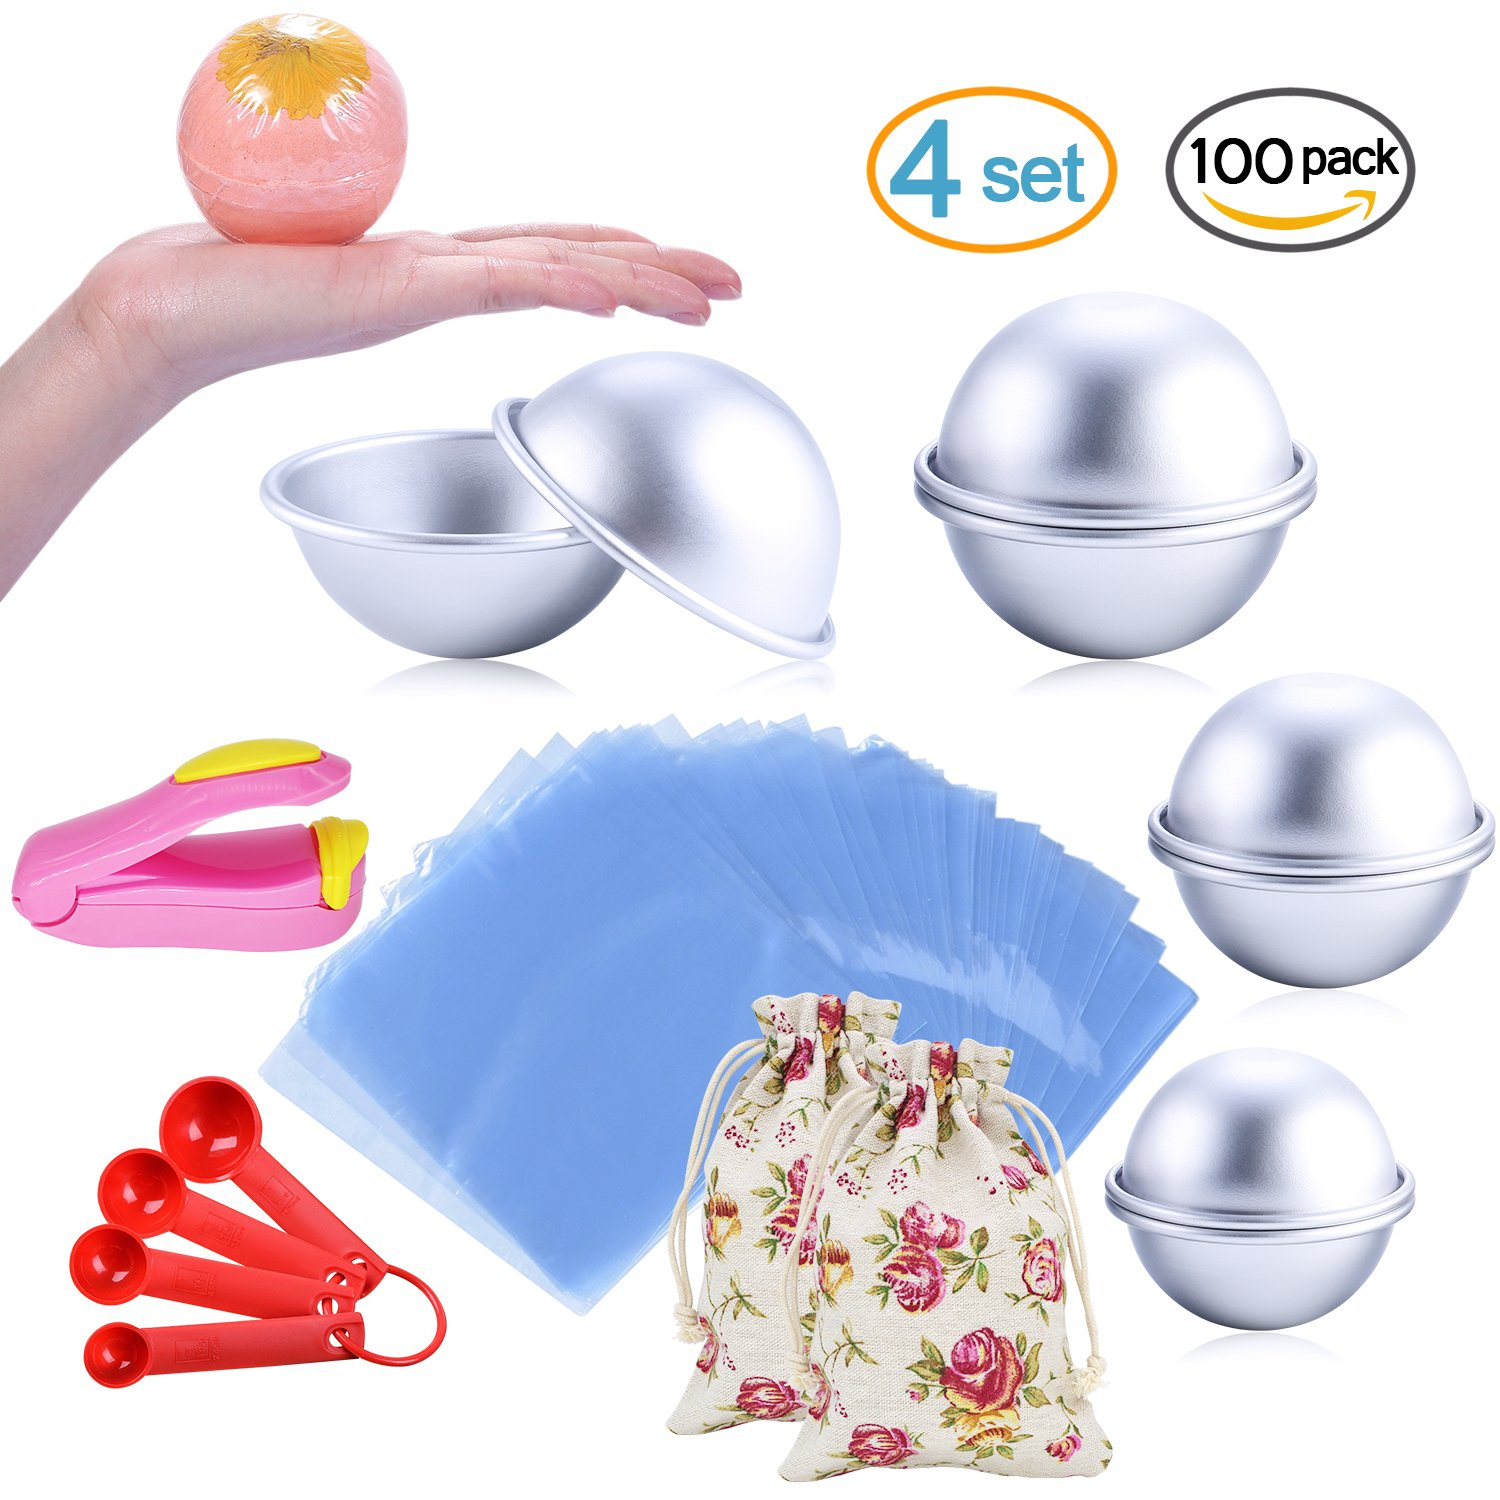 Bath Bomb Mold Set 116 Pcs - 3 Size 8 Pieces DIY Metal Mould, Shrink Wrap Bags, Gauge Spoon Set, Luxury Gift Bags, Mini Heat Sealer - for Soaps, Crafts and Bath Bombs Making (with Instructions)